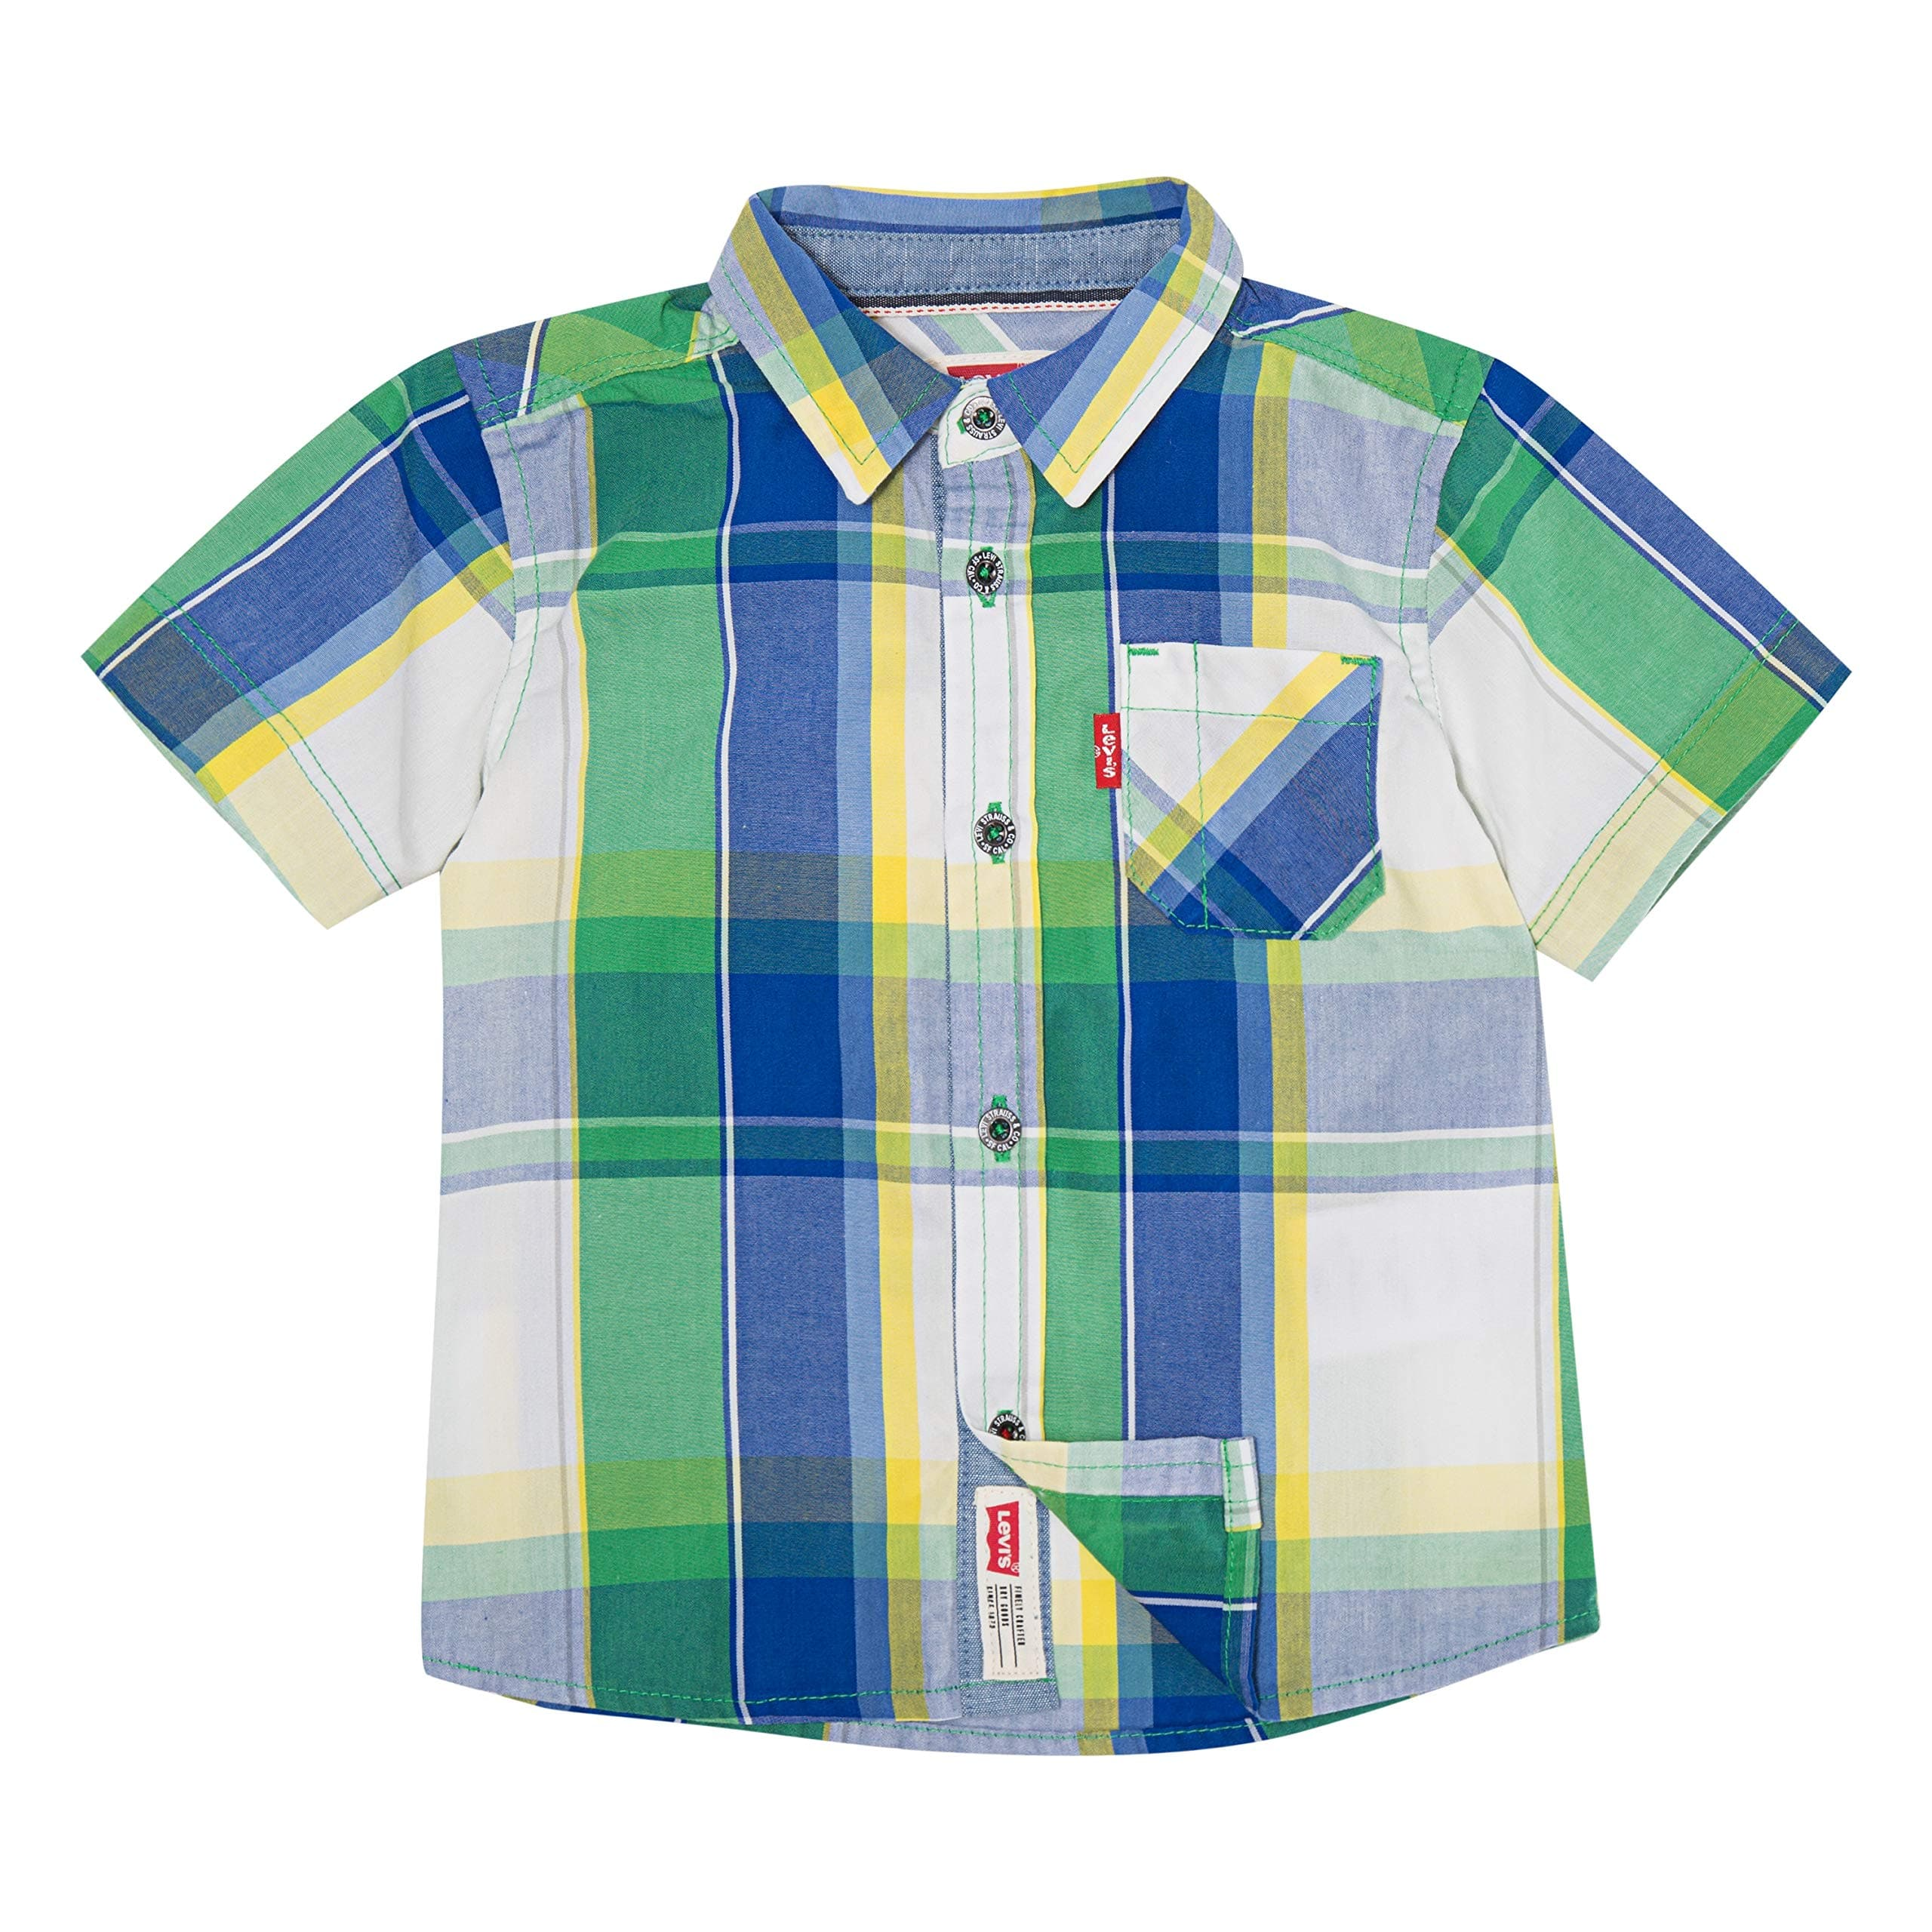 Levi's Boys' Short Sleeve Button Up Shirt, Size 18 months, Color Greenbrier - $3.91 at Amazon